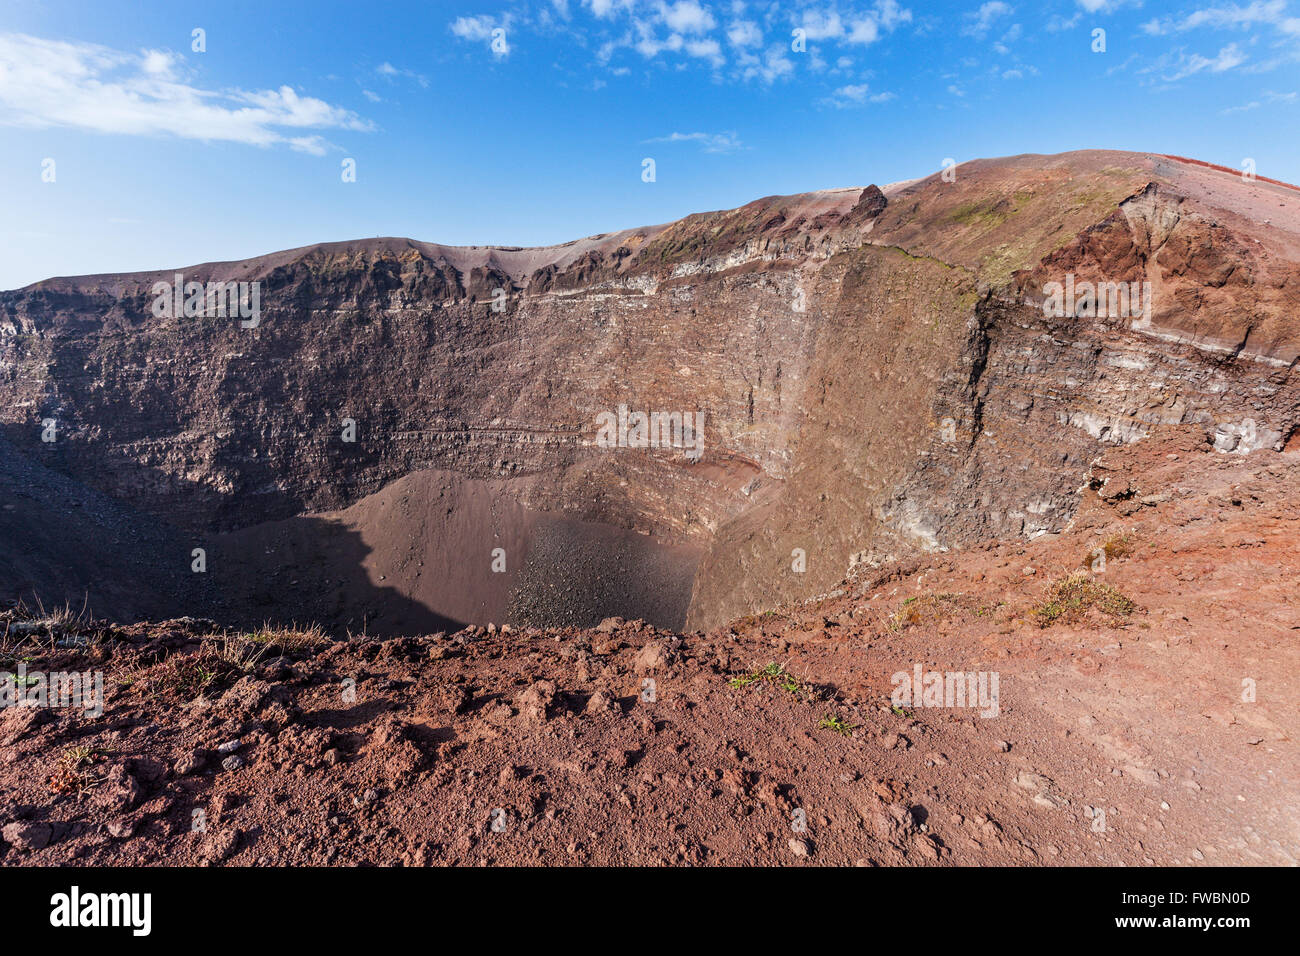 hight resolution of the crater of vesuvius volcano stock image